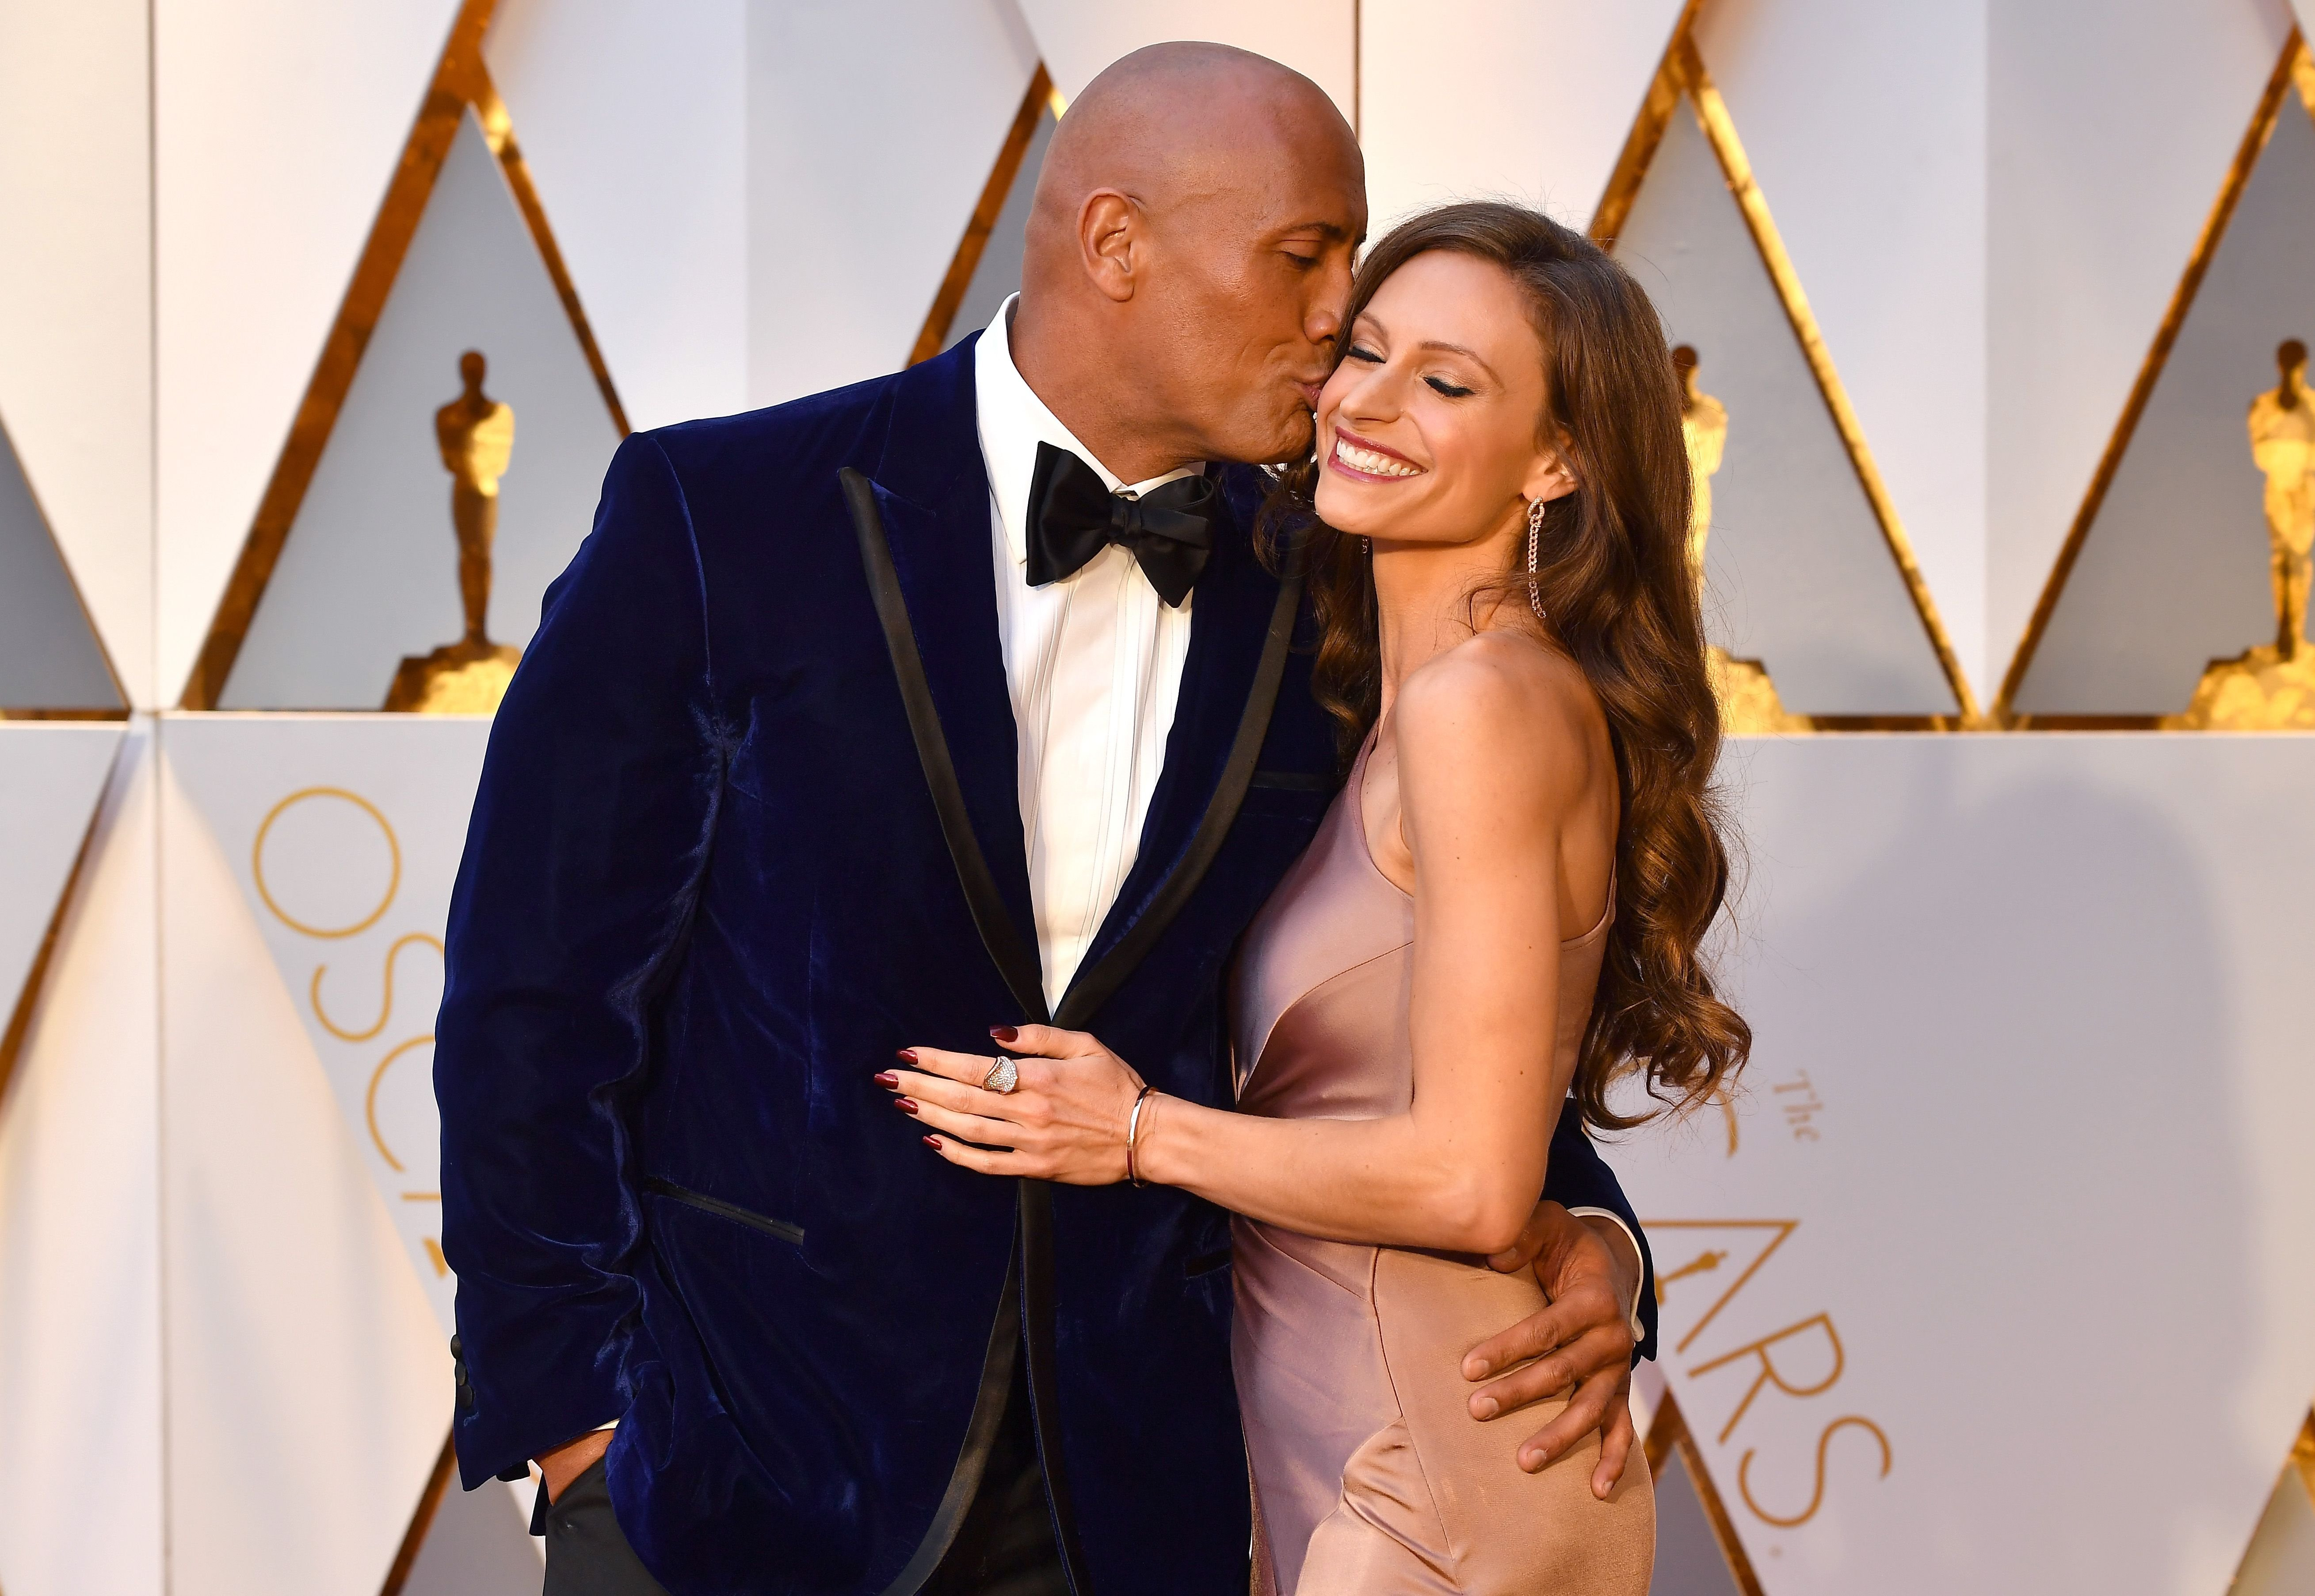 Dwayne Johnson and Lauren Hashian at the 89th Annual Academy Awards in Hollywood, California   Photo: Jeff Kravitz/FilmMagic/Getty Images